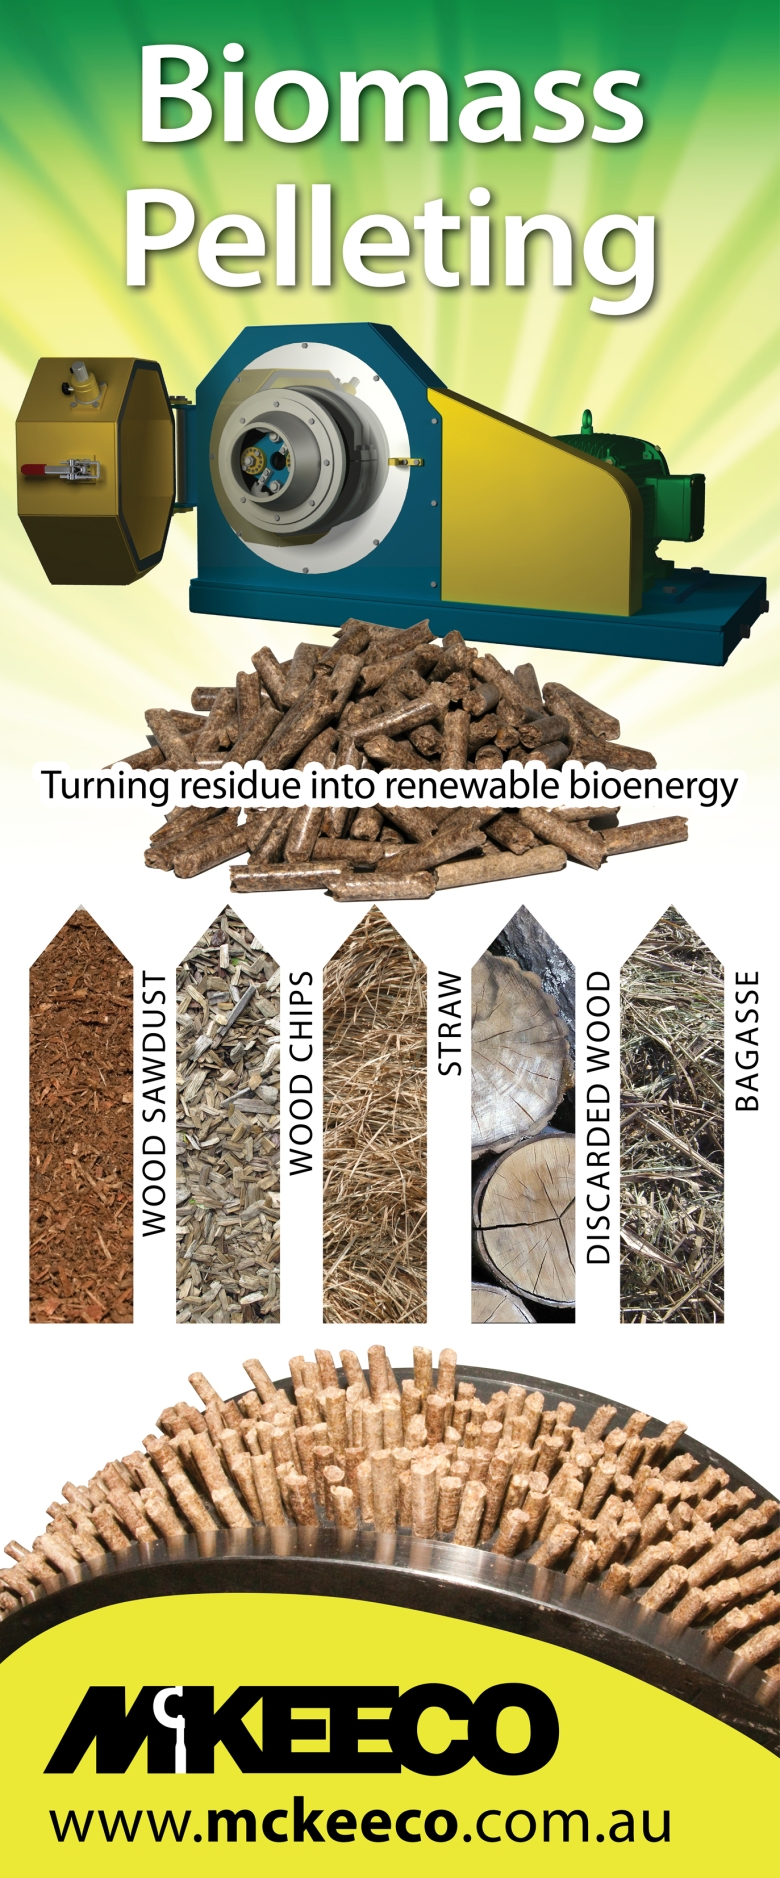 McKEECO biomass pelleting banner